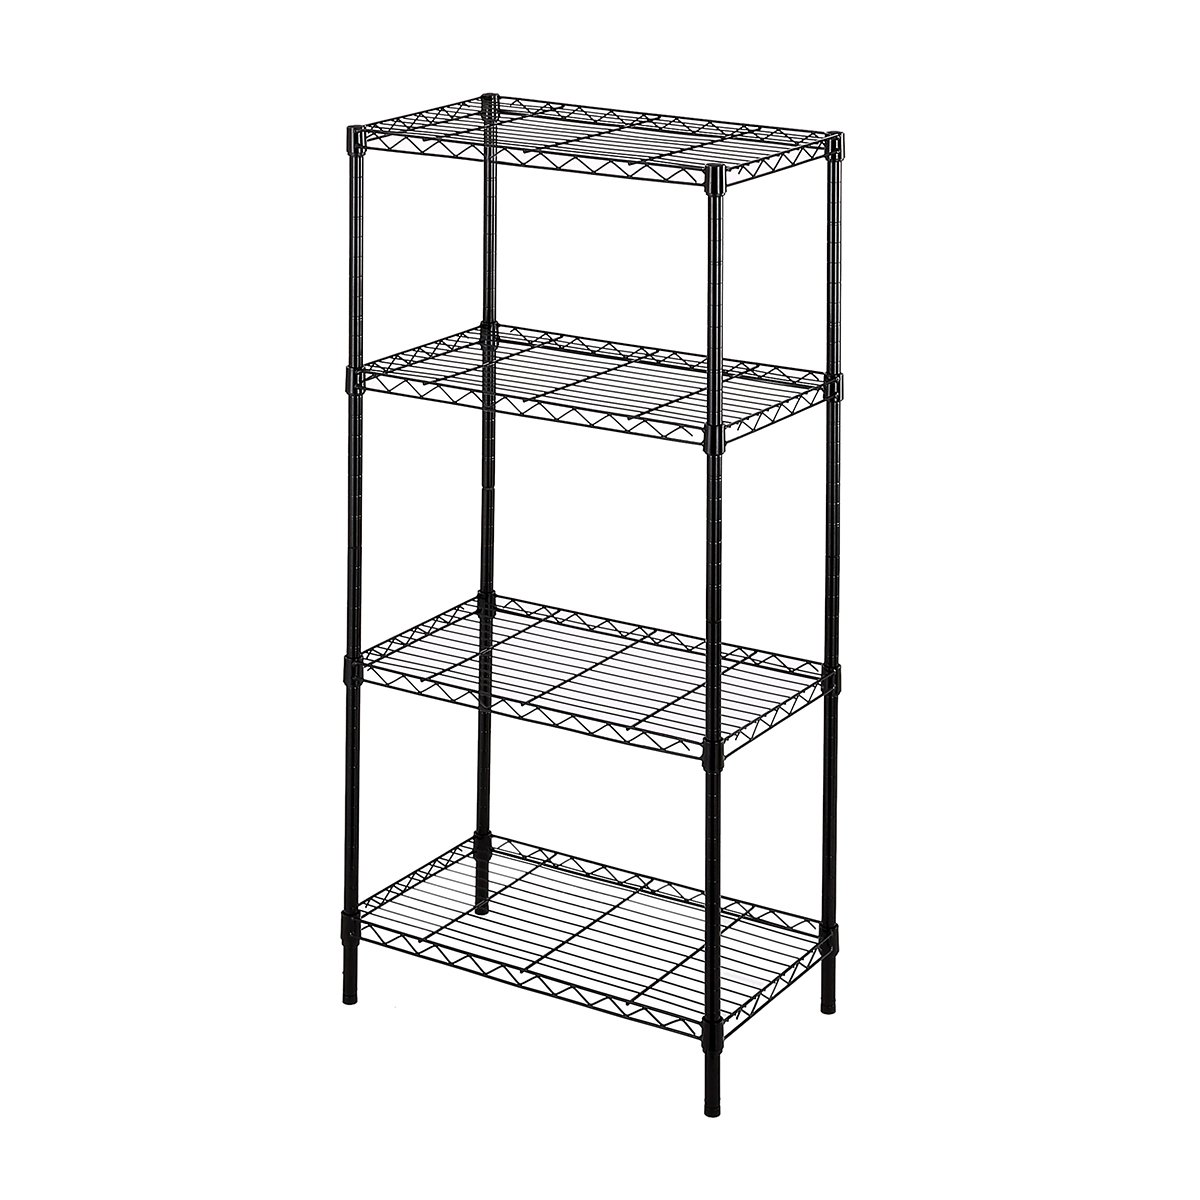 BuyHive 4-Tier Wire Shelving Storage Organizer Utility Garage Office Display Shelf Rack Leveling Feet